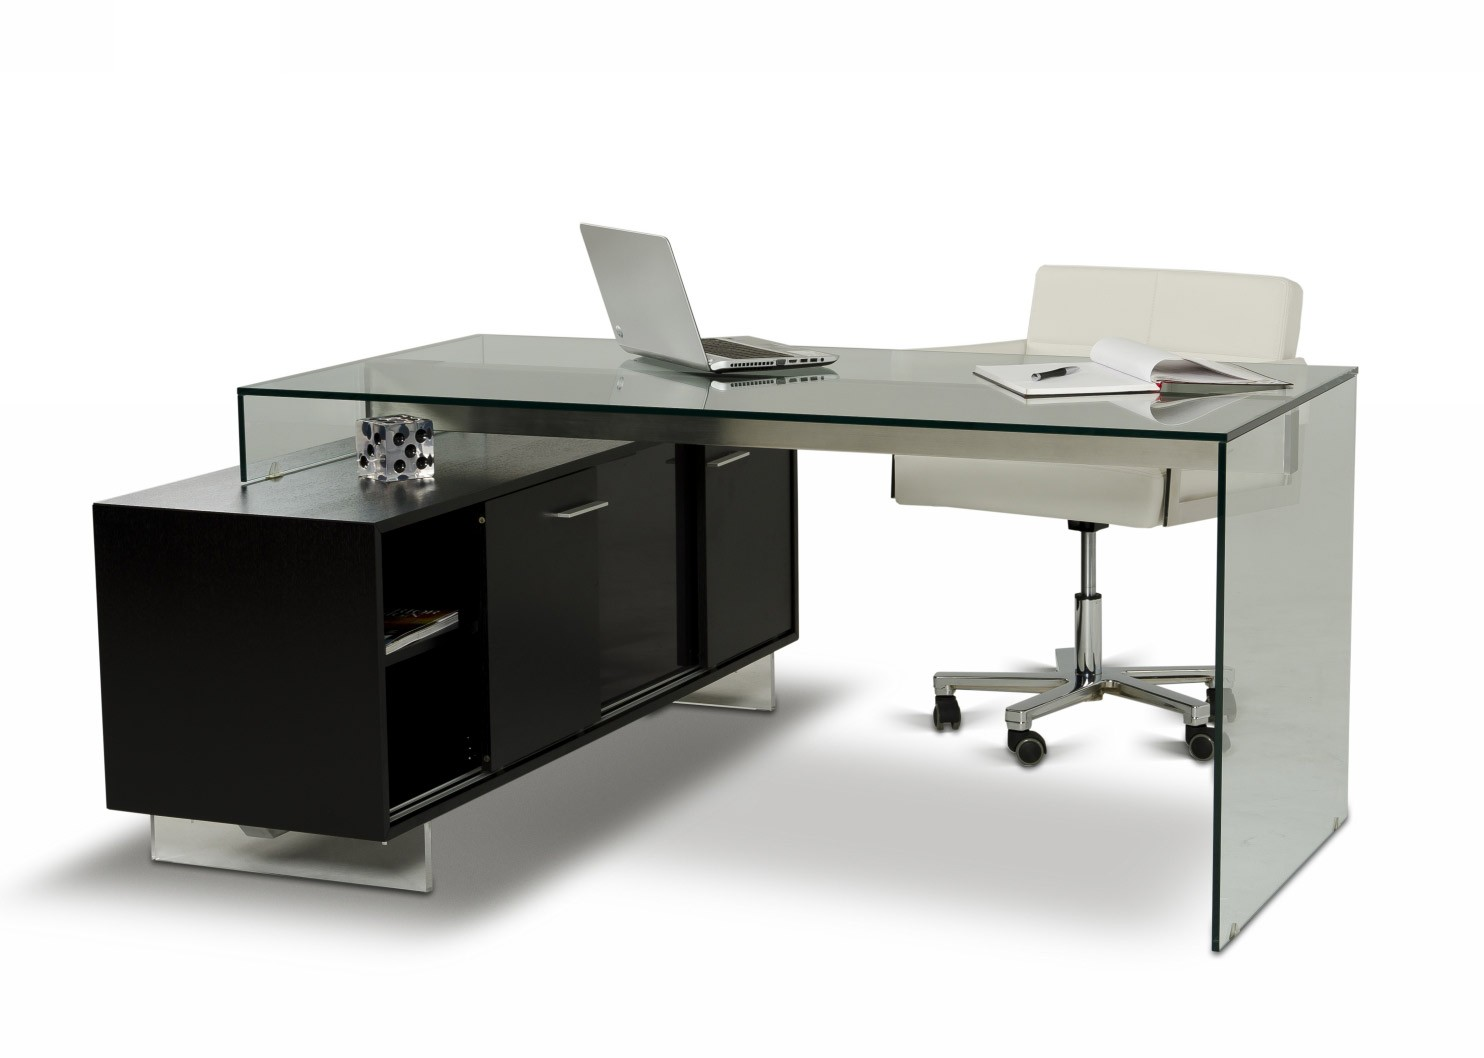 Modern Office Desk Furniture a modern office desk for your home office - la furniture blog